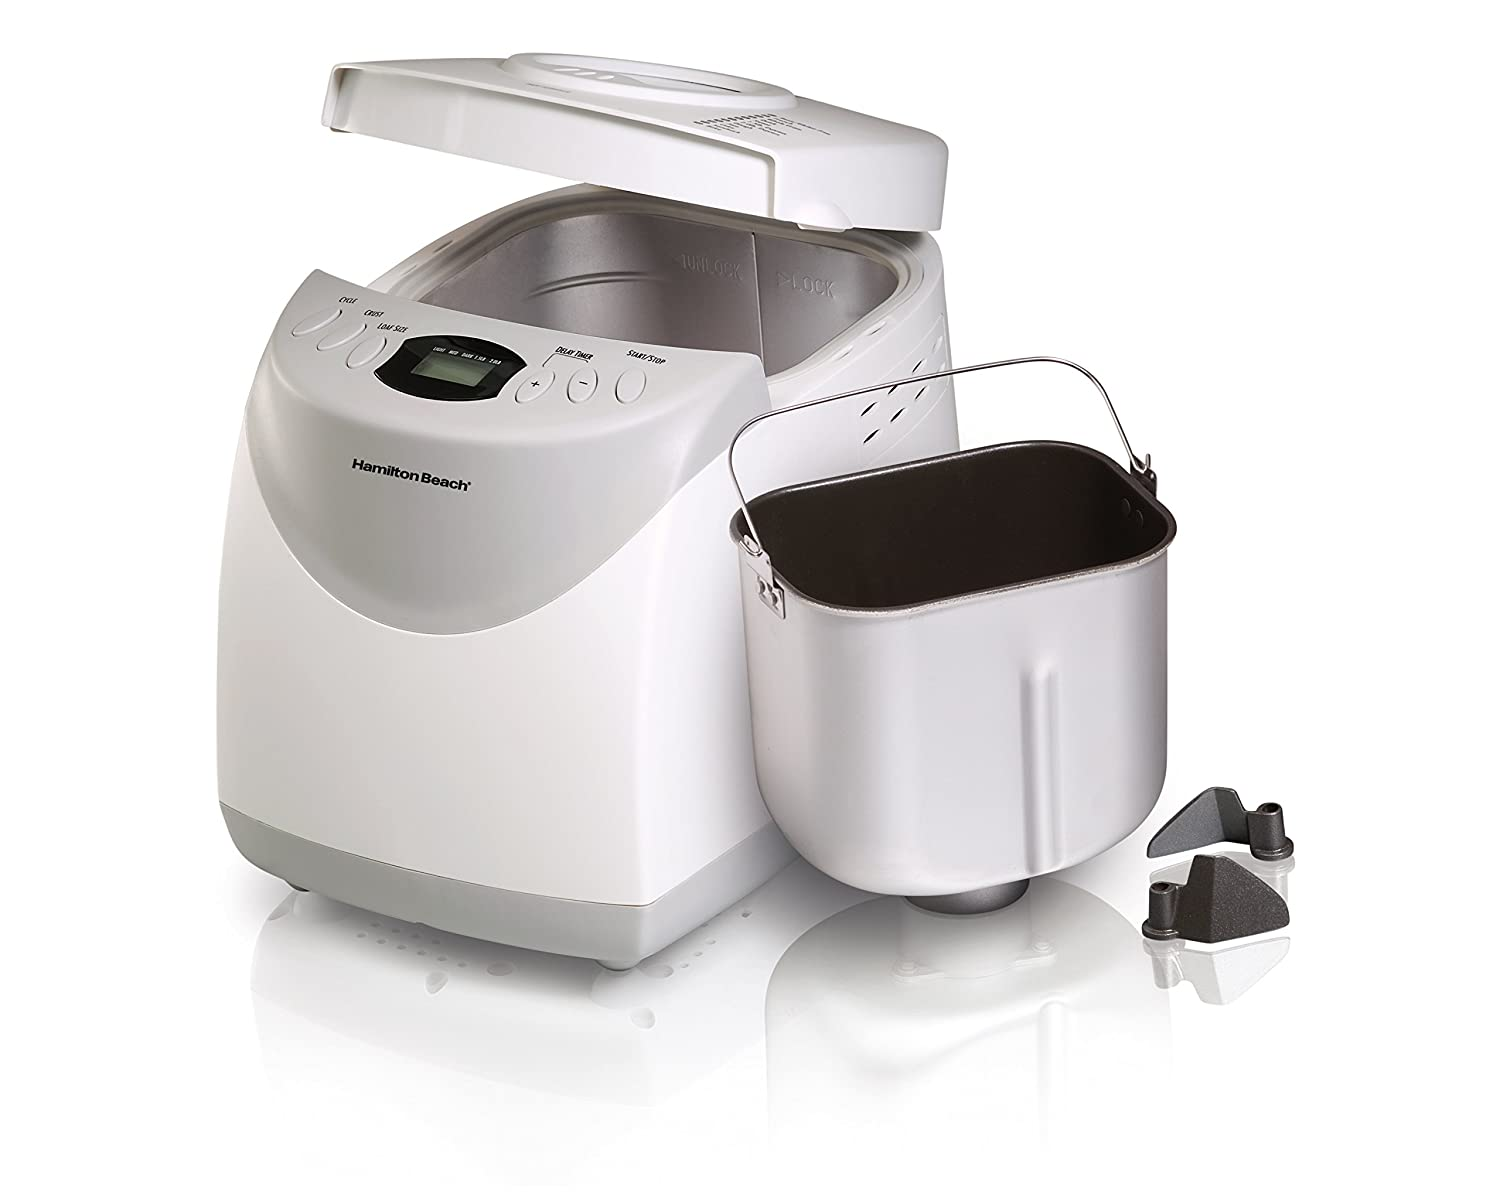 Hamilton Beach 29881 2-Pound Bread Maker, White (Discontinued